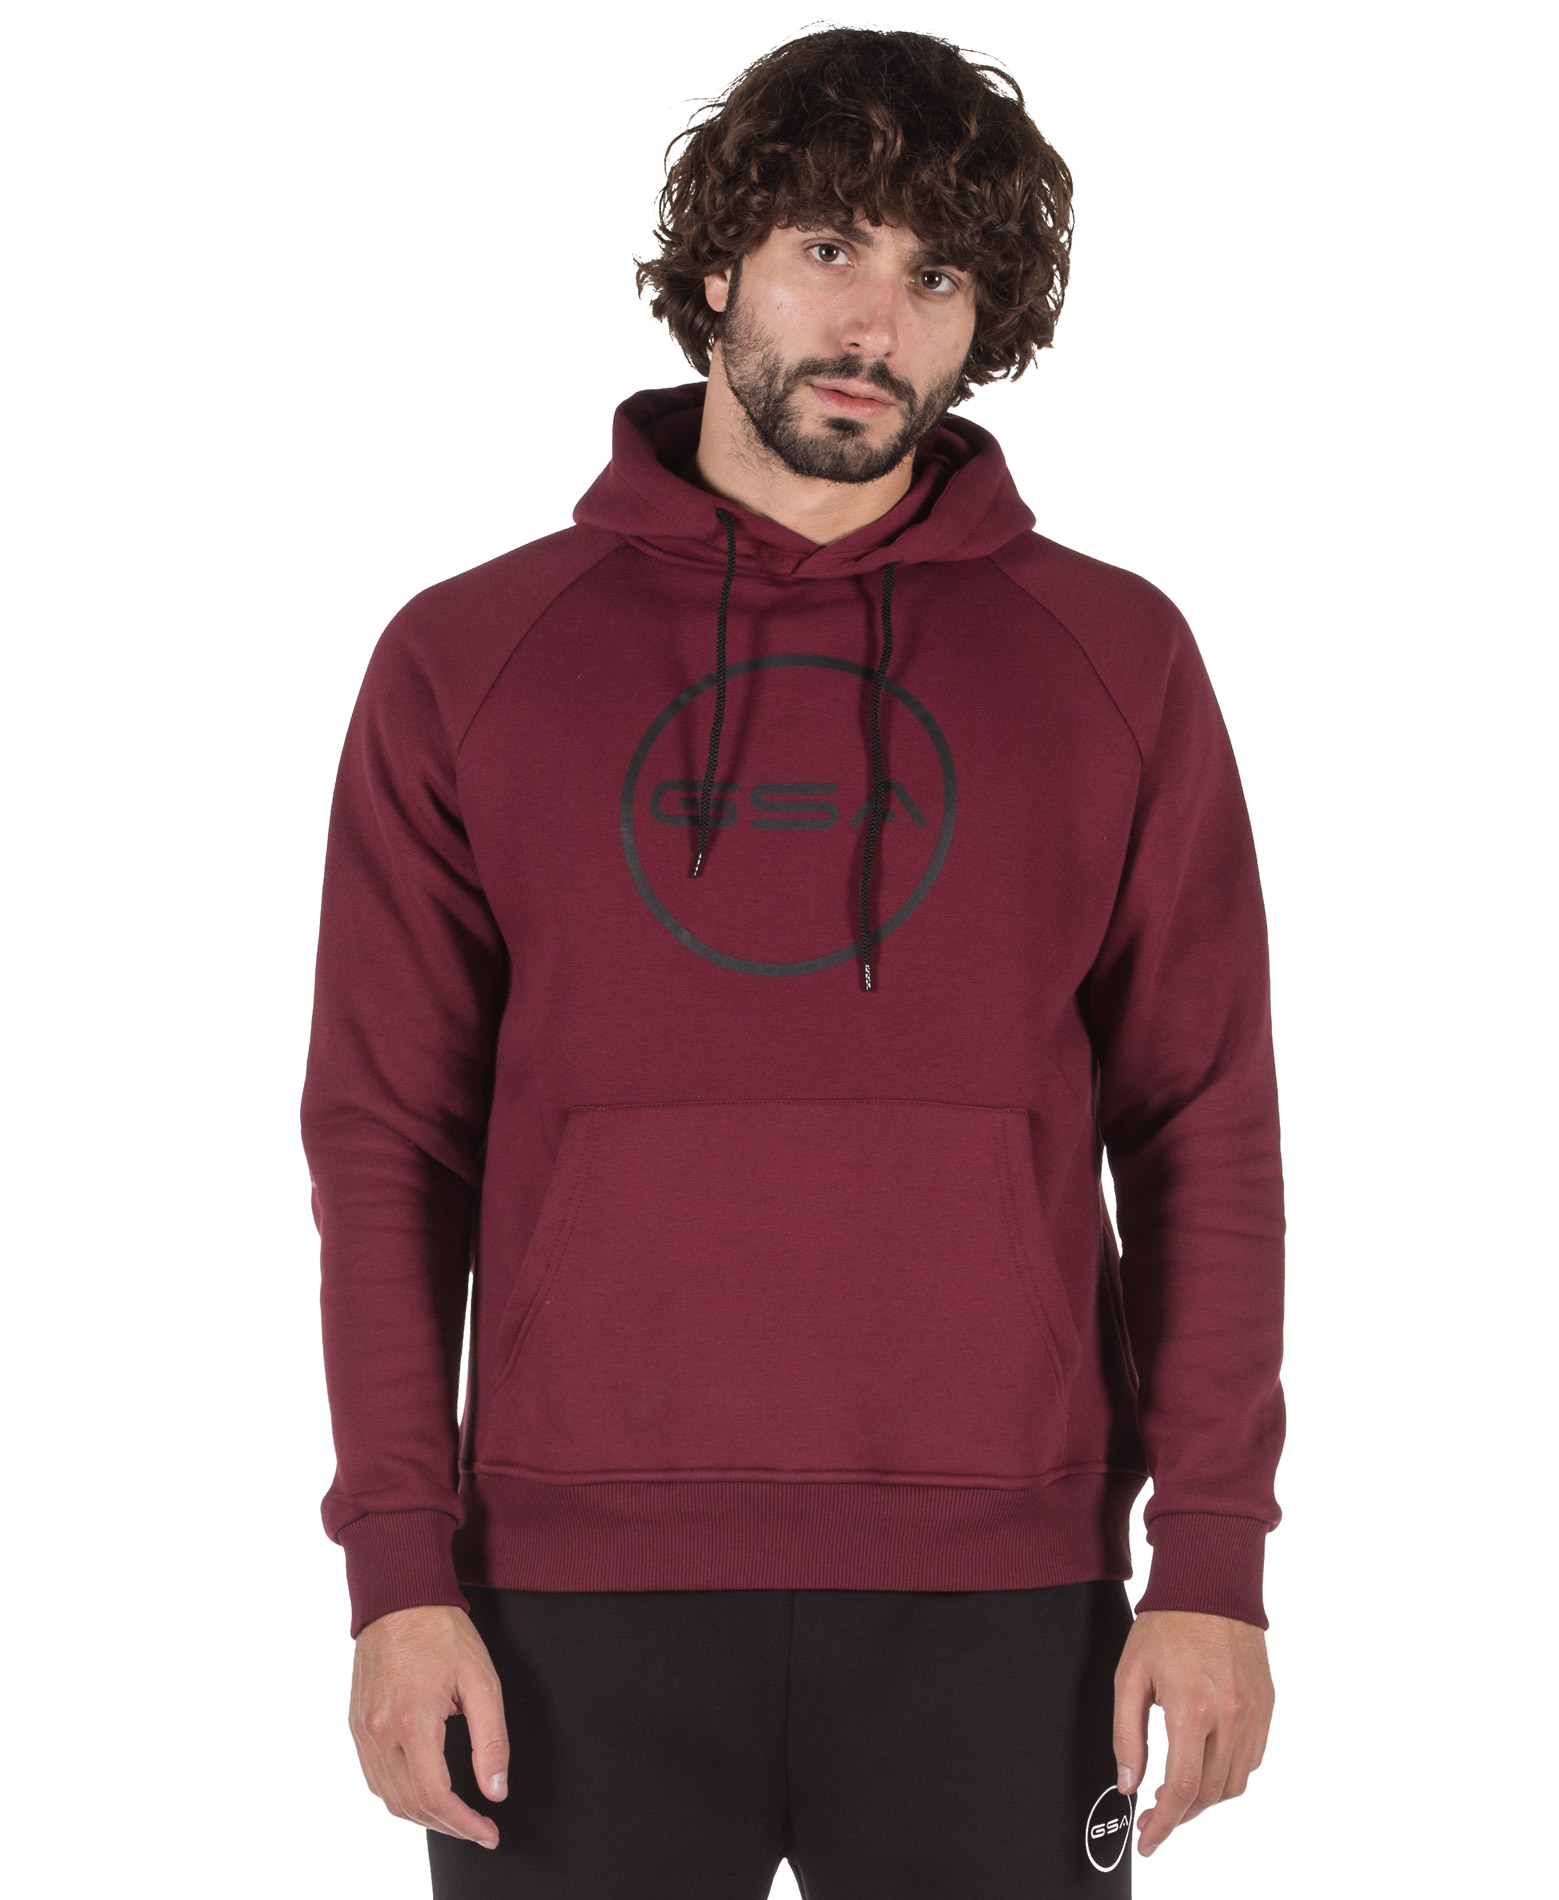 GSA SUPERCOTTON HOODIE LOGO 17-18105-47 VICTORIOUS RED Μπορντό